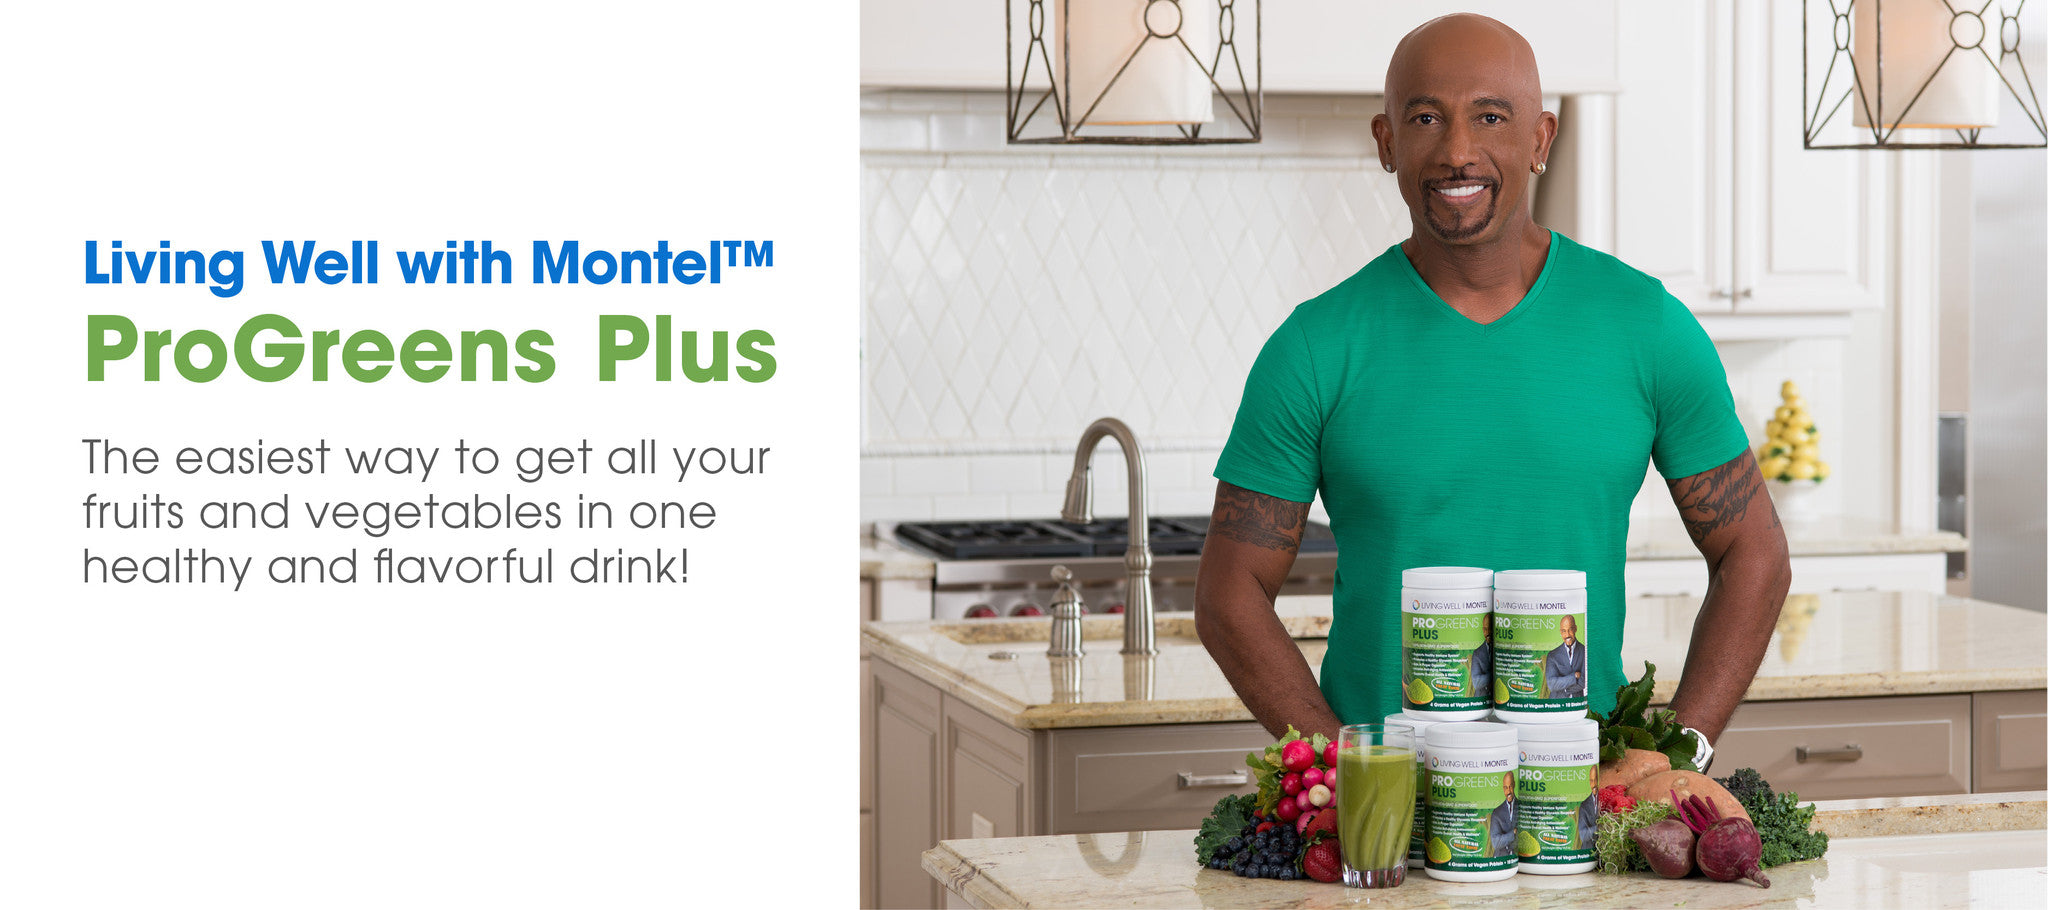 Living Well with Montel ProGreens Plus